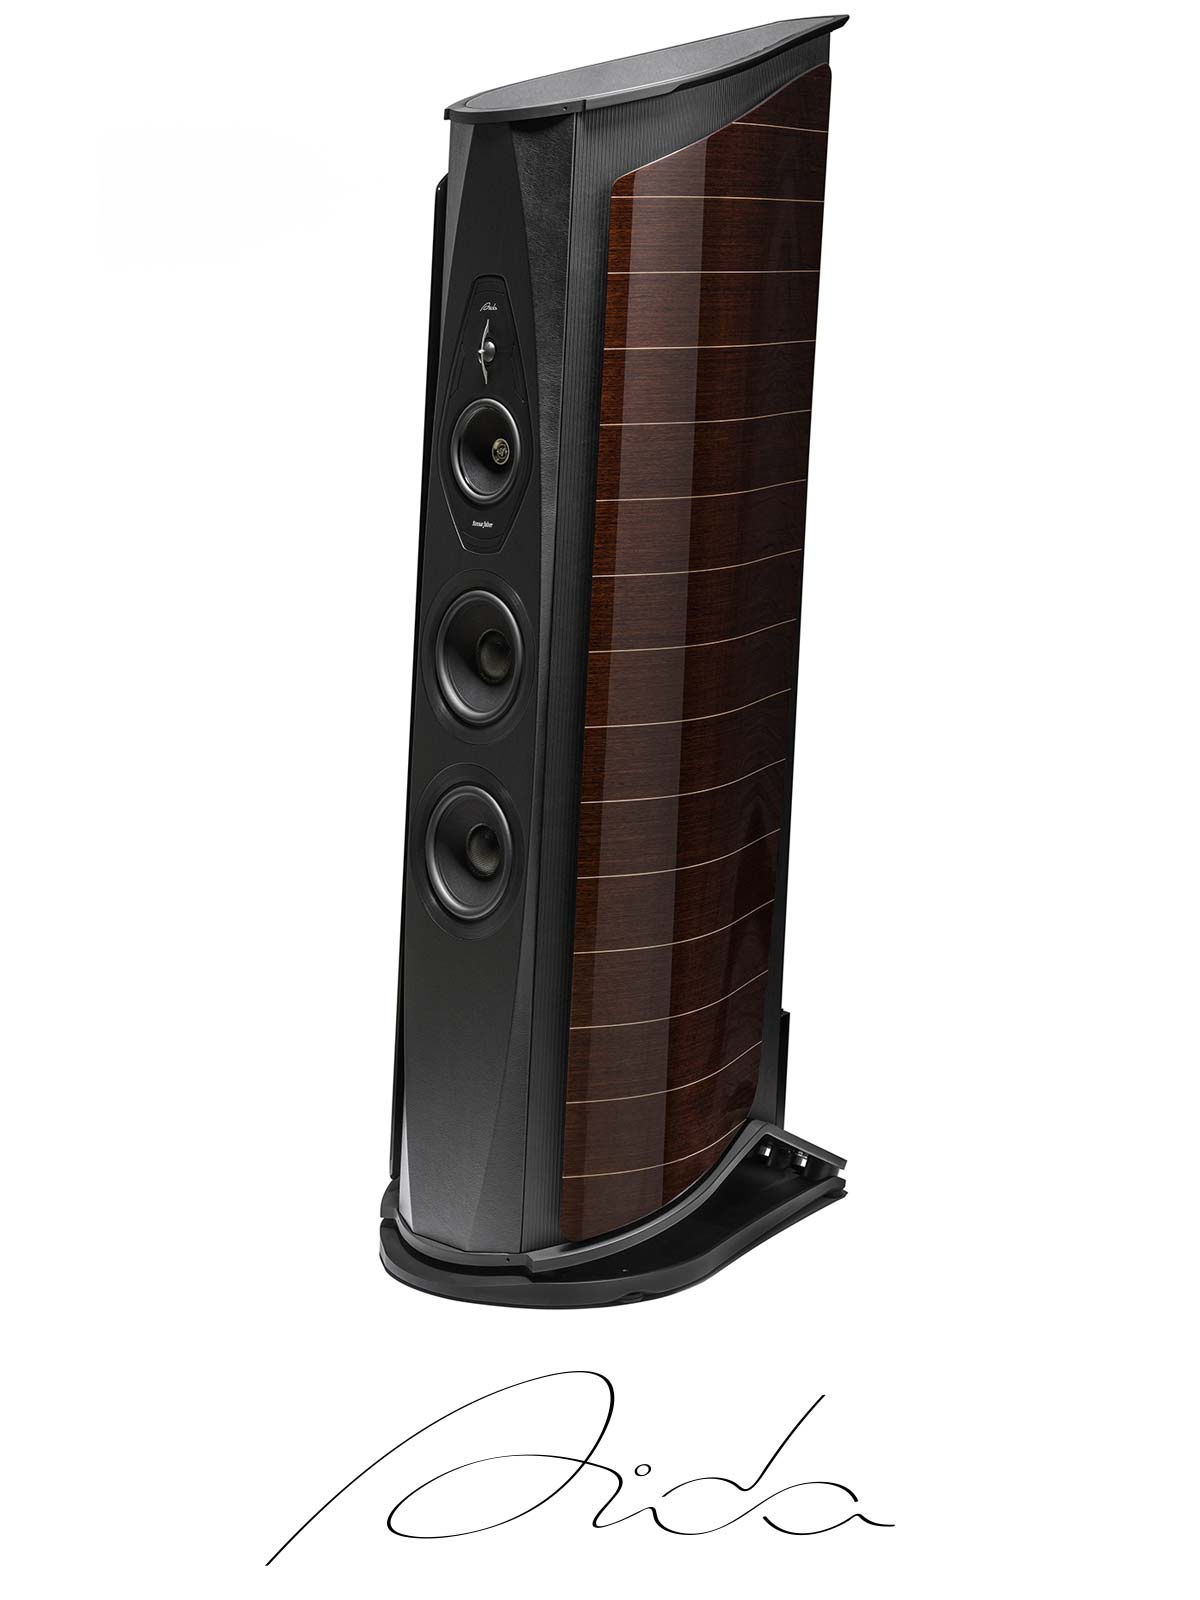 Aida high-efficiency speaker and professional fidelity